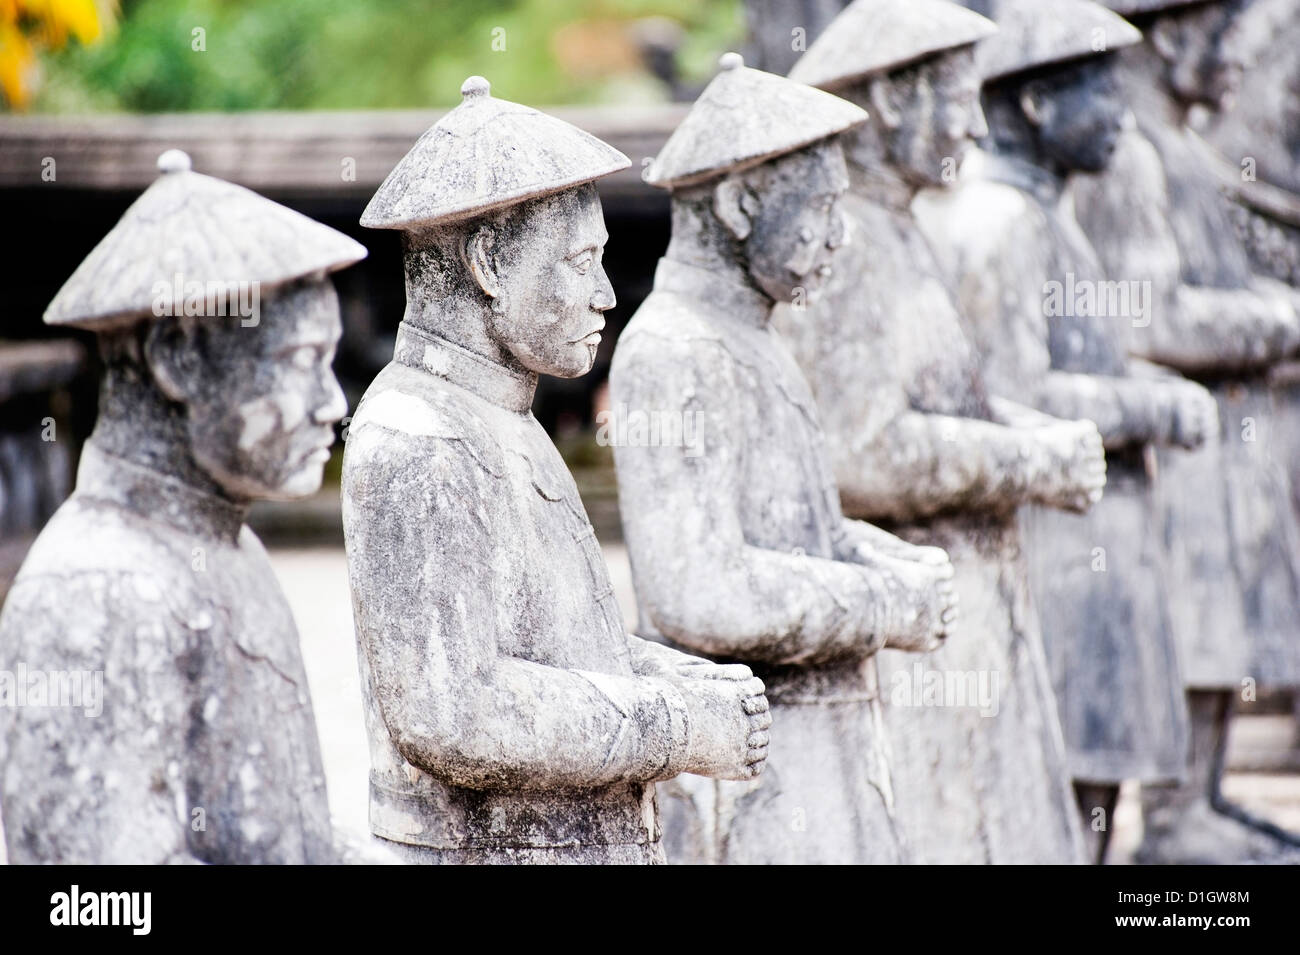 Stone statues at Tomb of Khai Dinh, Hue, UNESCO World Heritage Site, Vietnam, Indochina, Southeast Asia, Asia - Stock Image